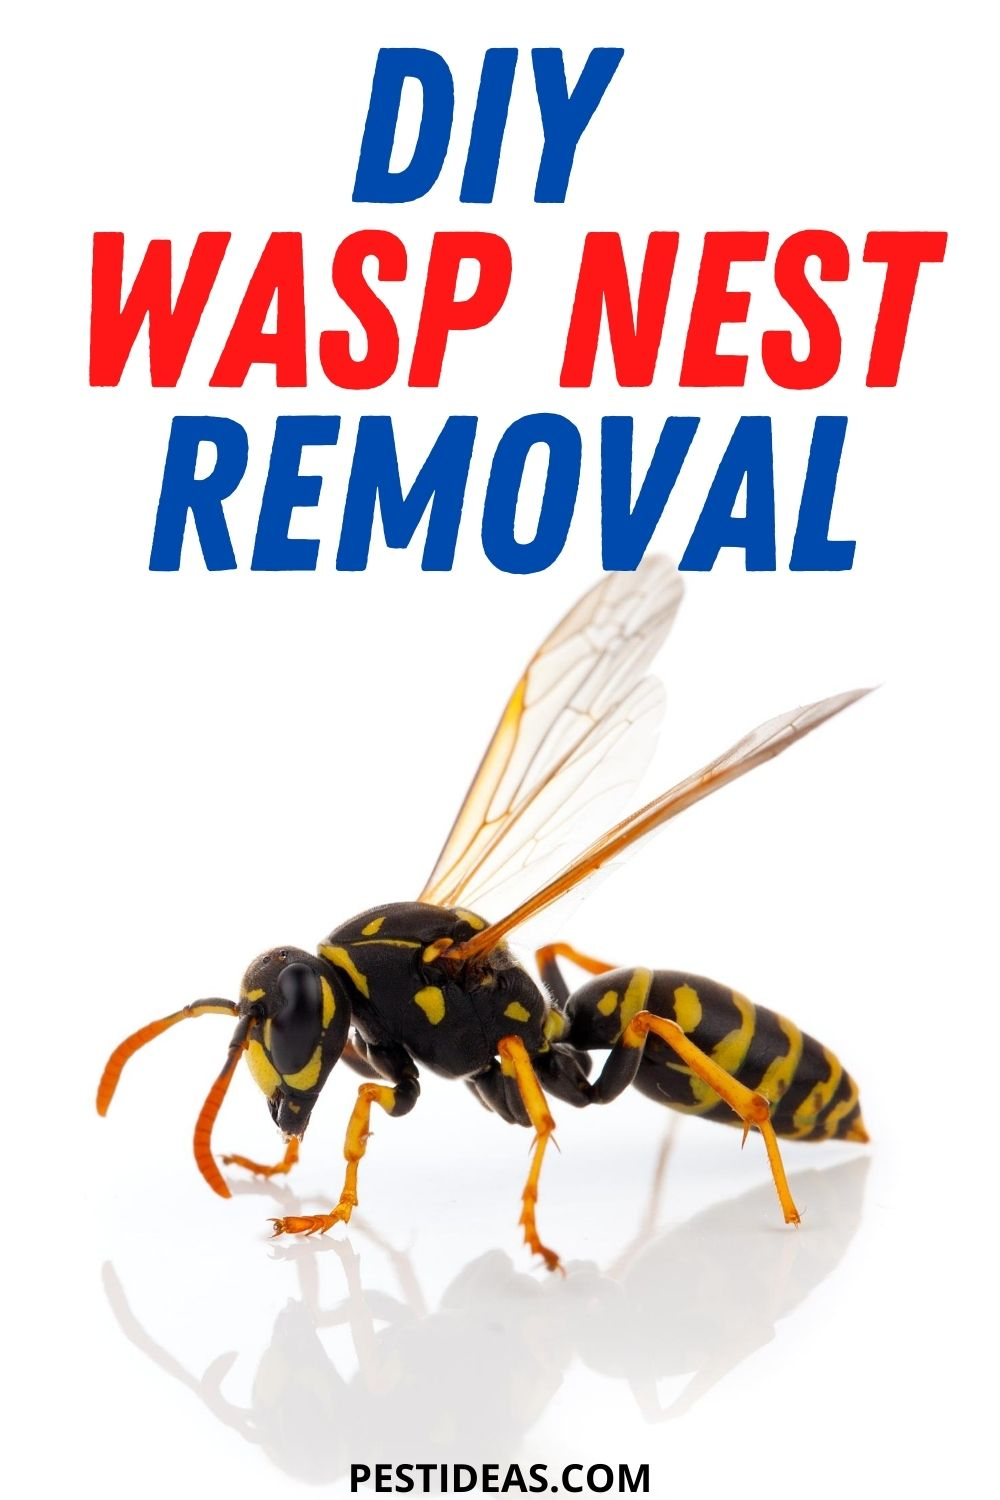 DIY Wasp Nest Removal